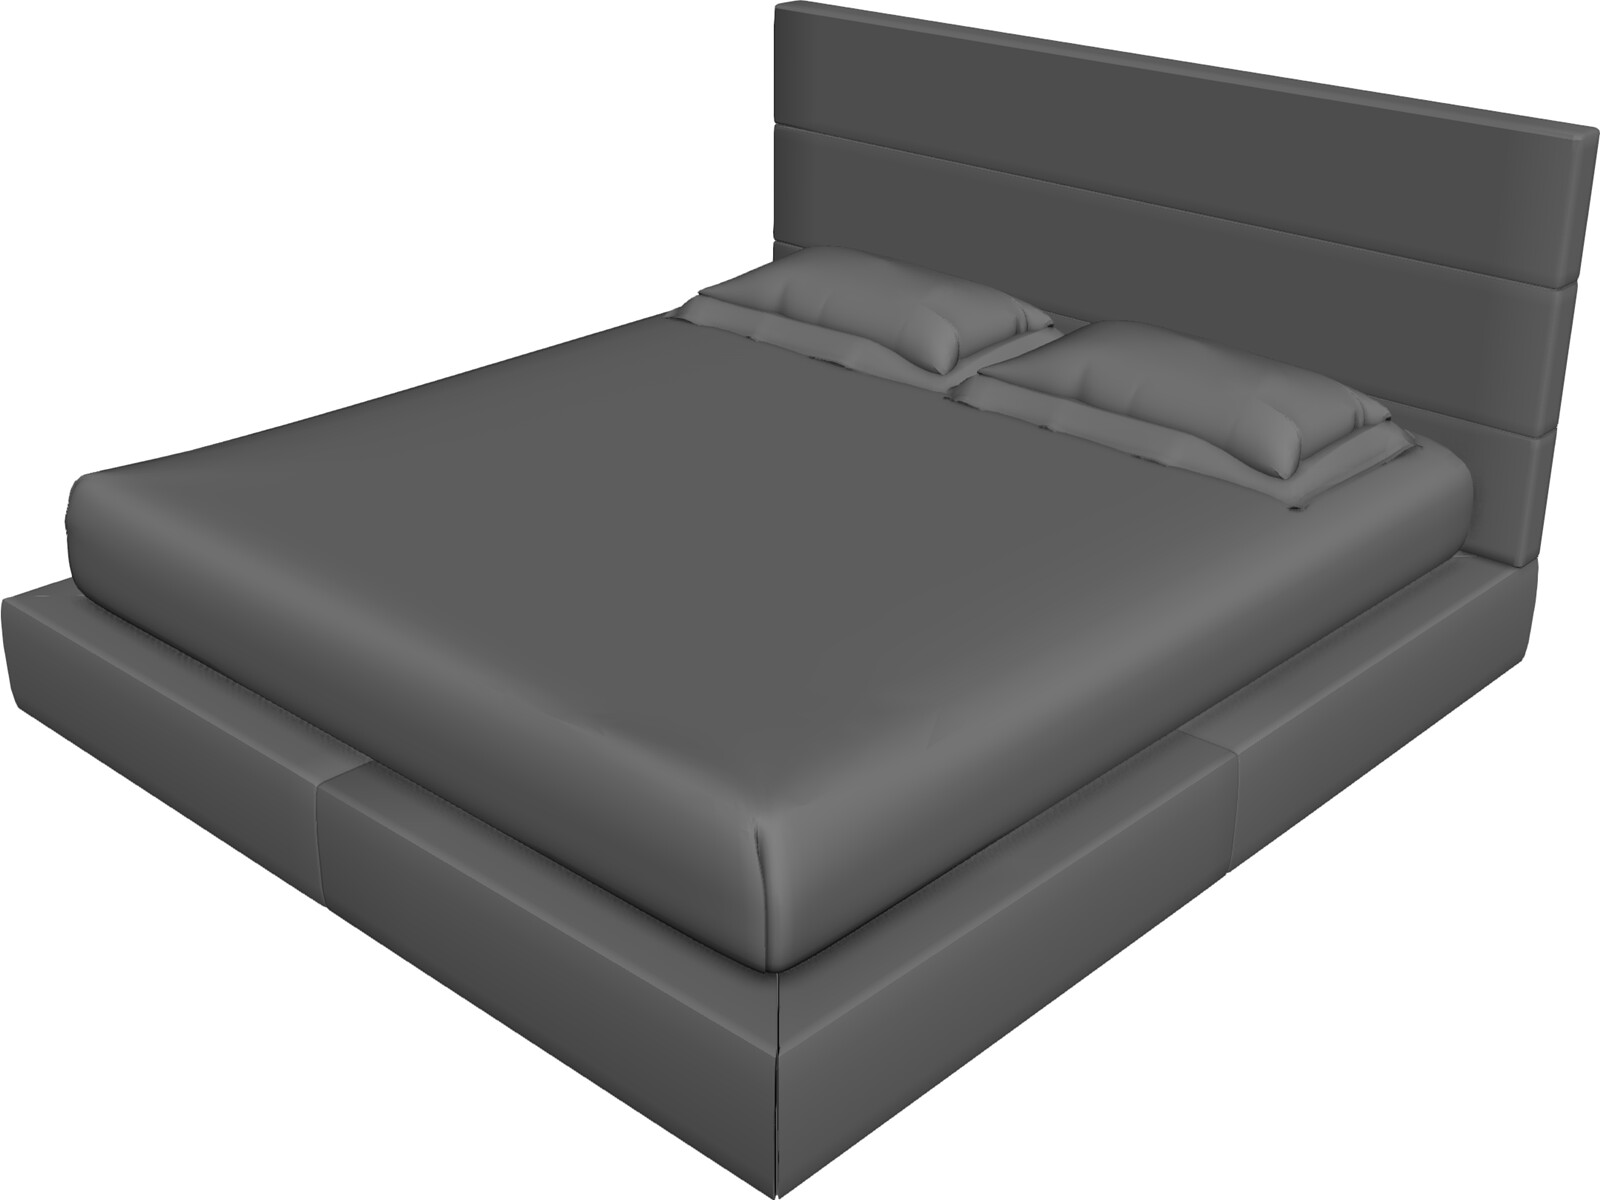 Bed 3d Model 3d Cad Browser